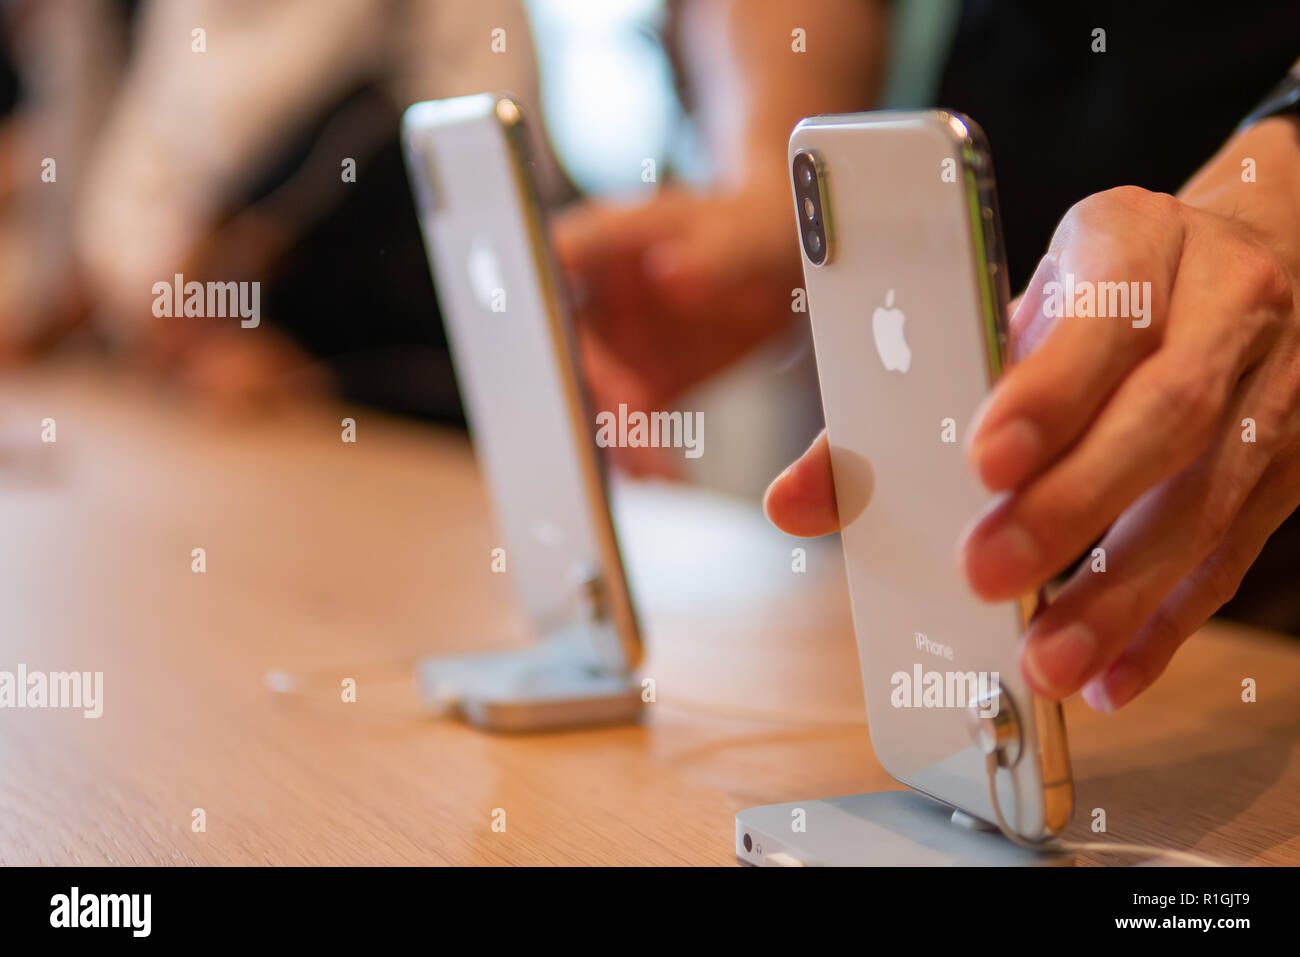 Bangkok, Thailand - November 10, 2018: Customers try the new Apple iPhone XS at the Apple store. - Stock Image